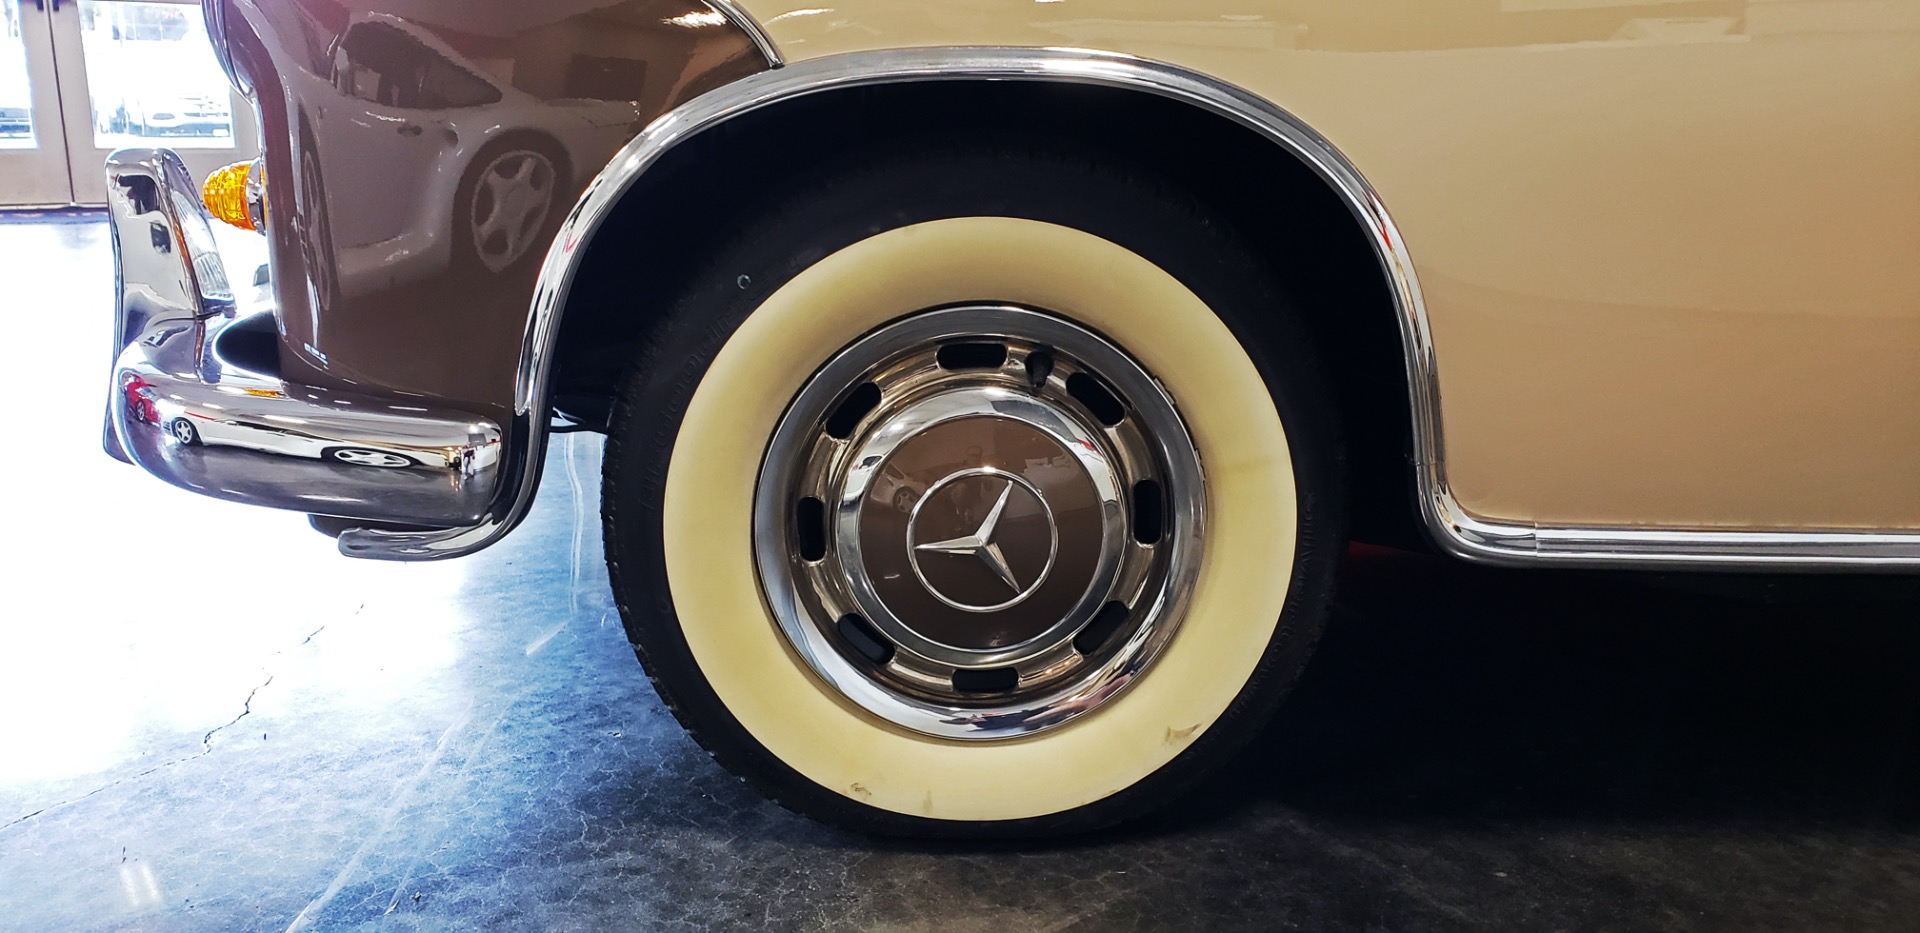 Used 1957 Mercedes-Benz 220 S Cabriolet - Full Restoration for sale Sold at Formula Imports in Charlotte NC 28227 10